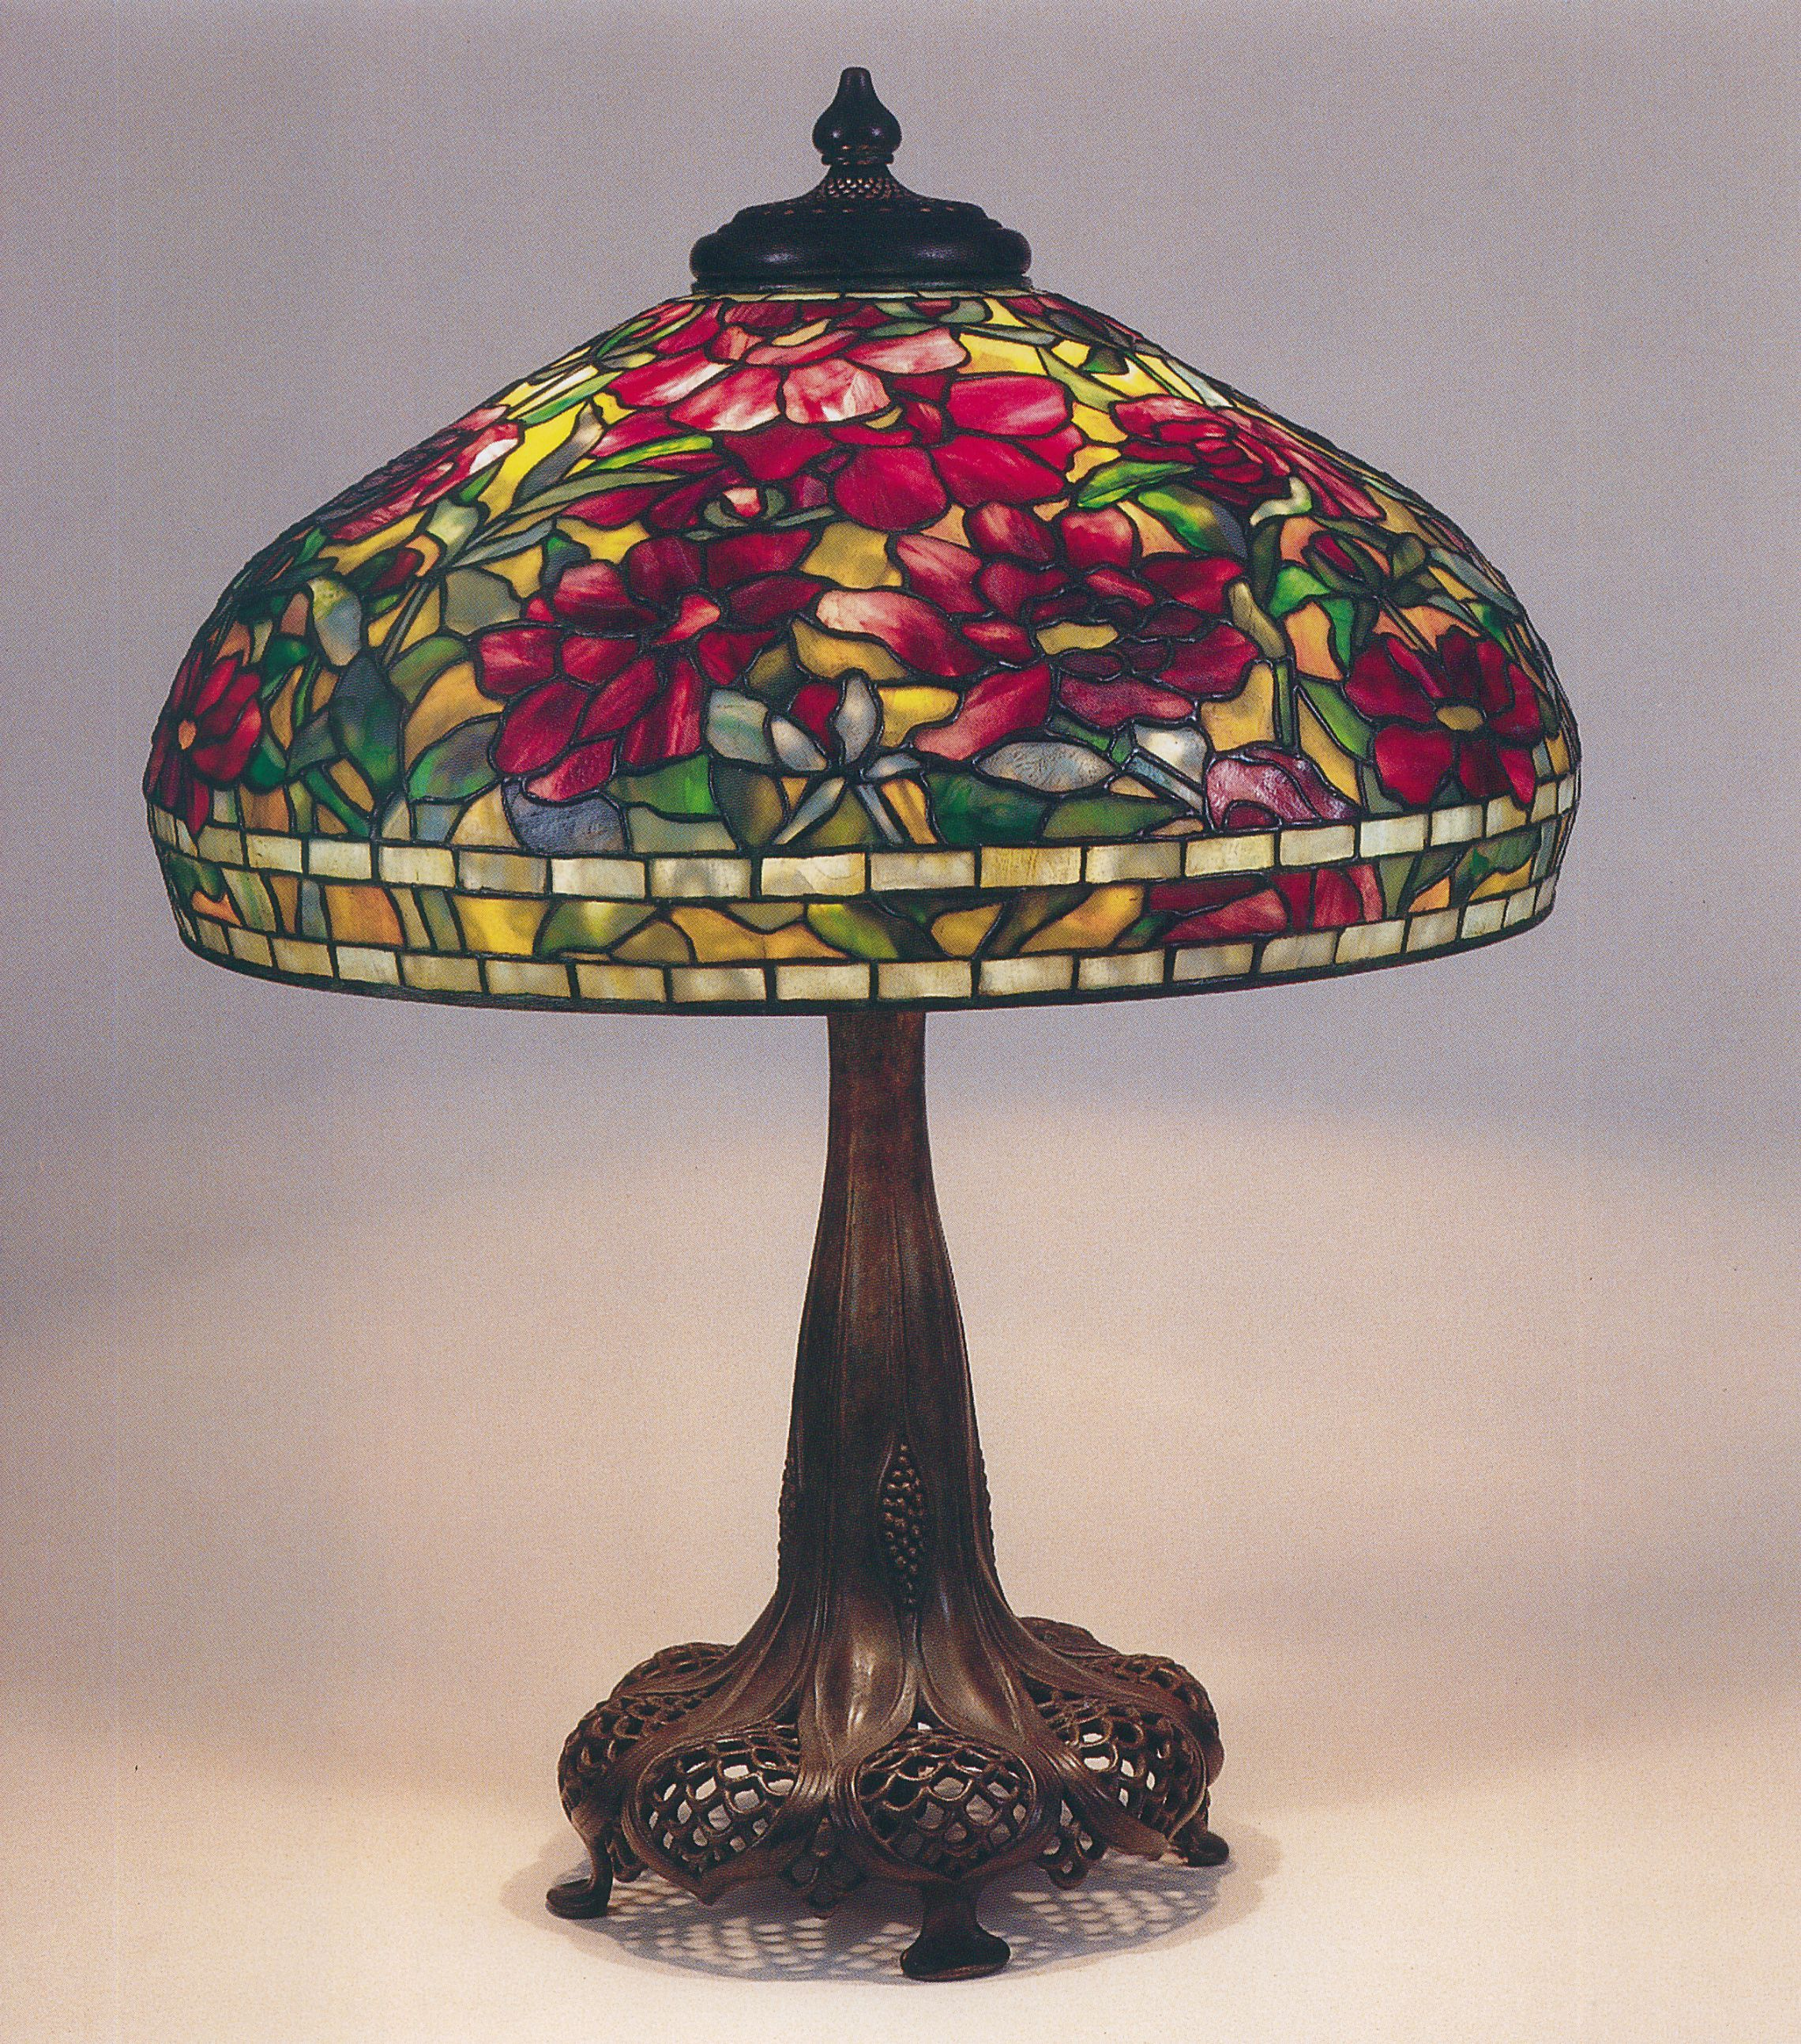 A New Light on Tiffany - L& shade [ Peony ] & The most awesome images on the Internet | Peonies Tiffany lamps ... azcodes.com